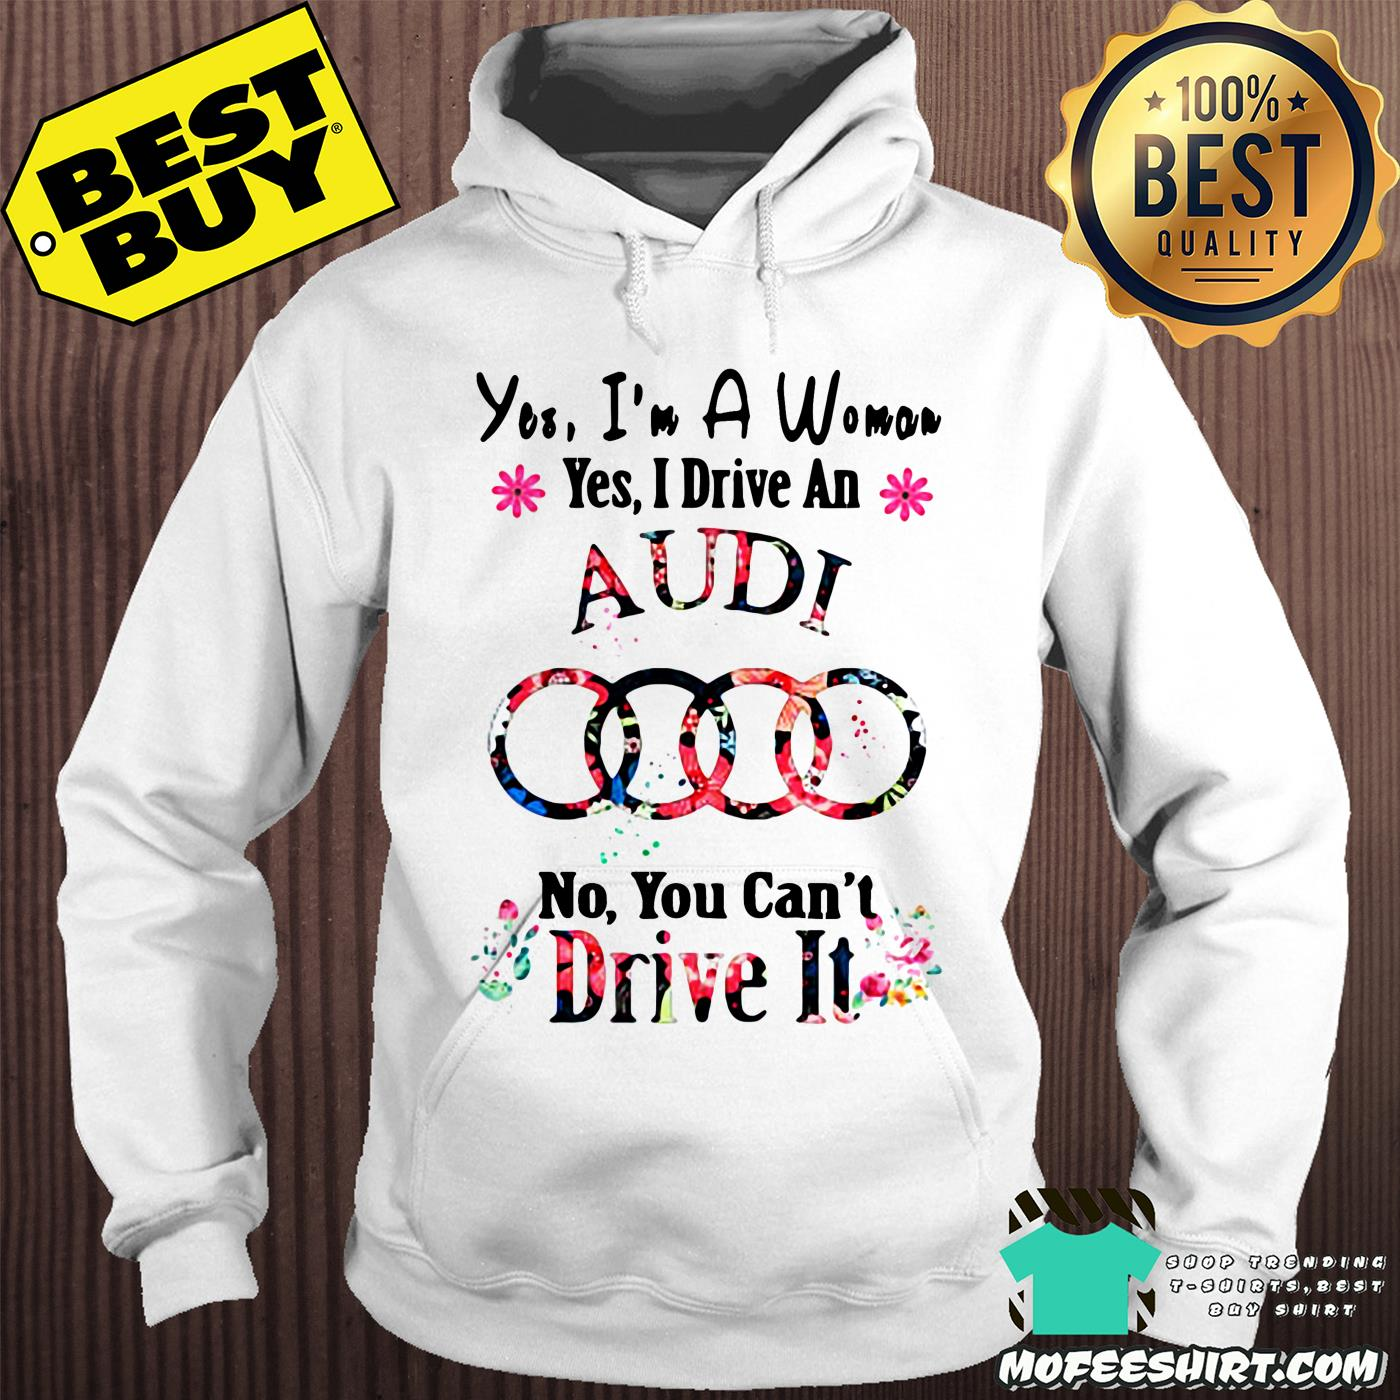 yes im a woman yes i drive an audi no you cant drive it flower hoodie - Yes, I'm a woman yes I drive an Audi no you can't drive it flower shirt